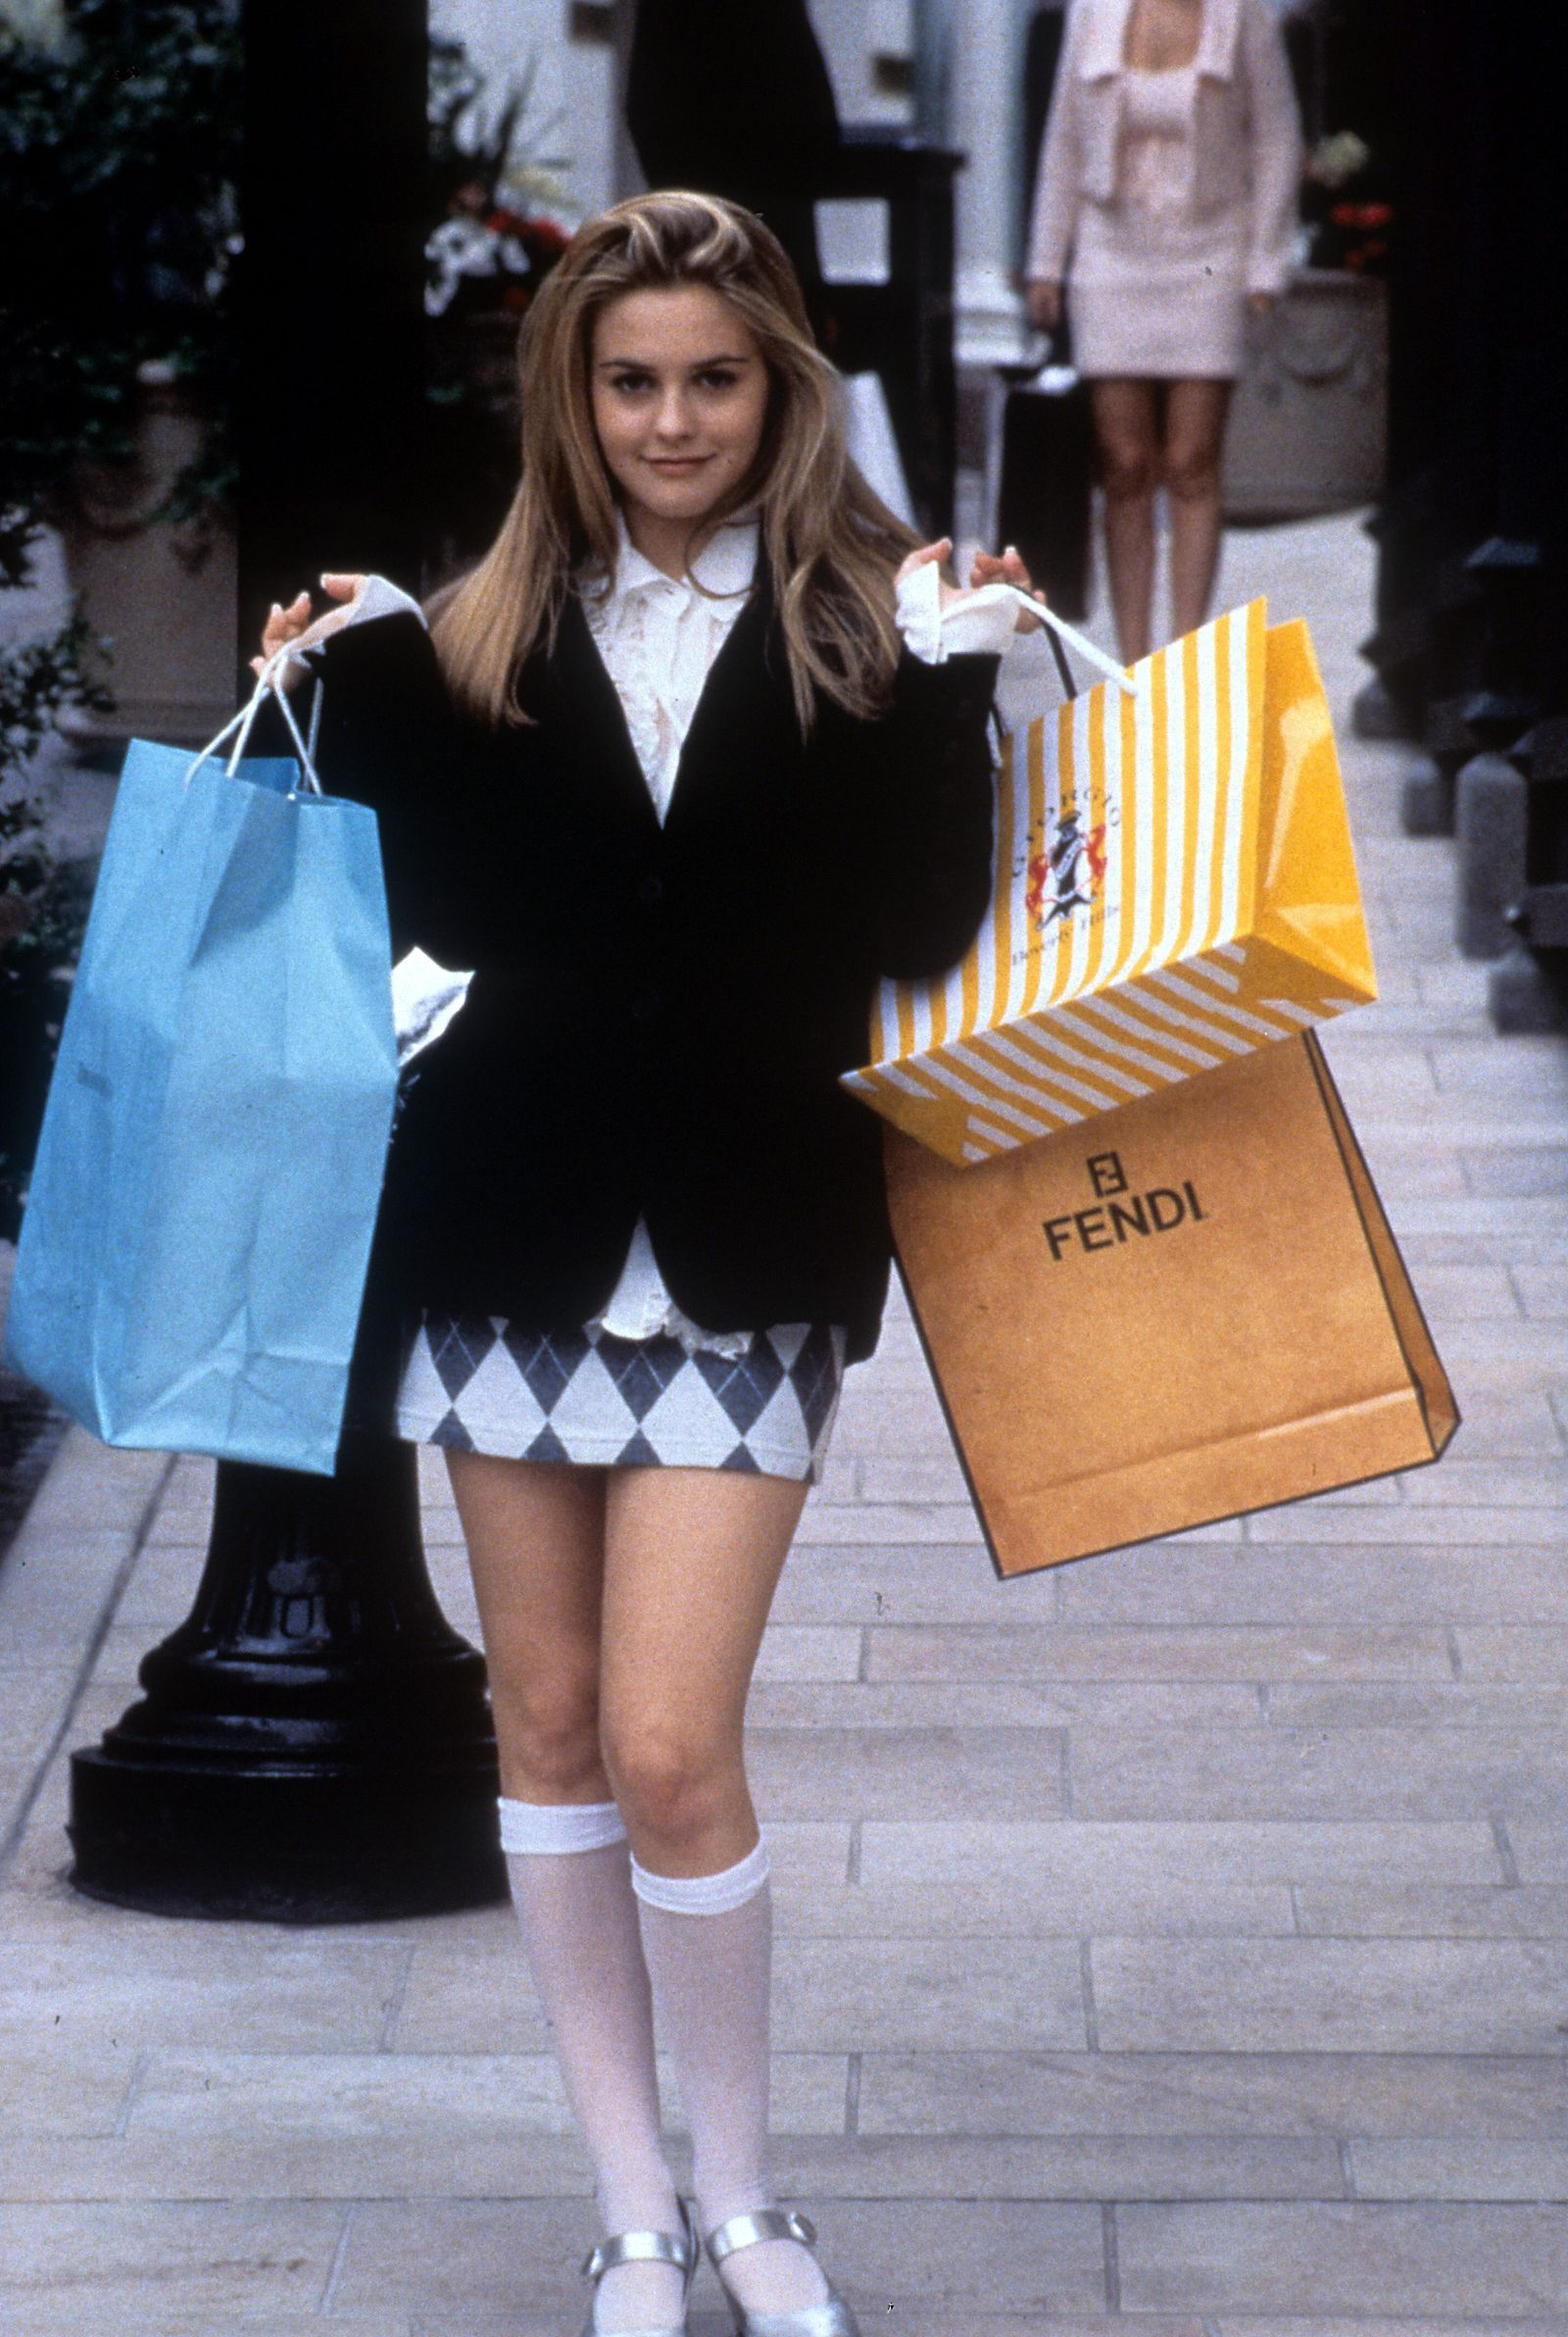 These Clueless costumes are perfect for fashion lovers this Halloween. #halloween #clueless #halloweencostumes